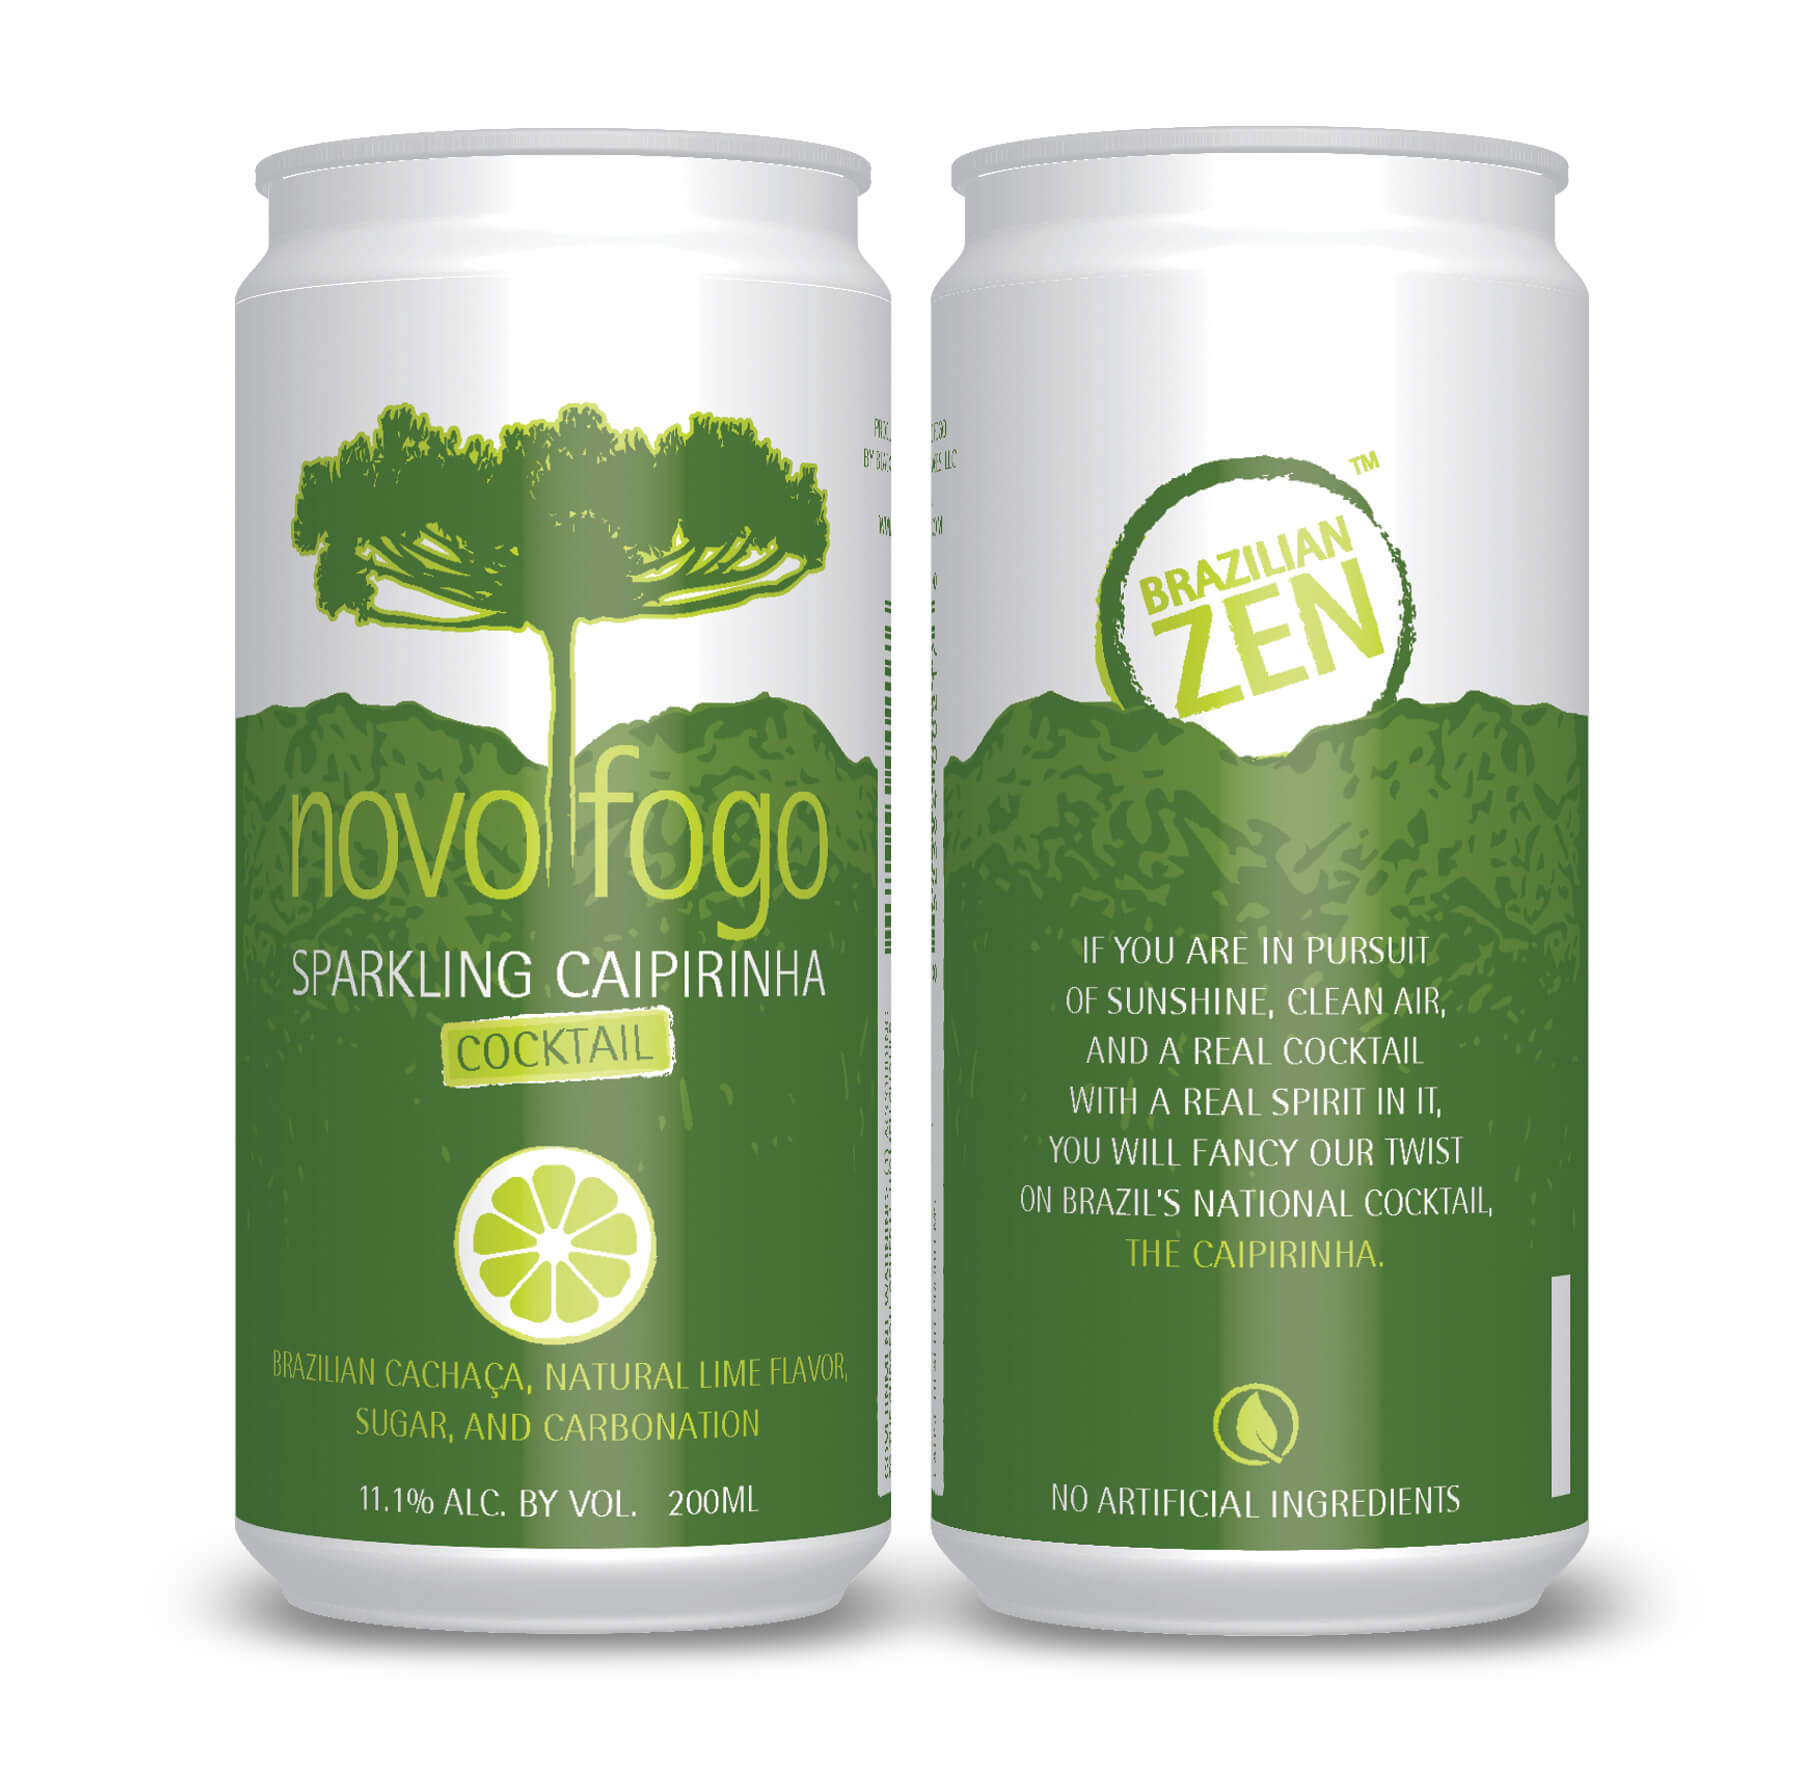 Novo Fogo Sparkling Caipirinha in a can - Ready to drink cocktail